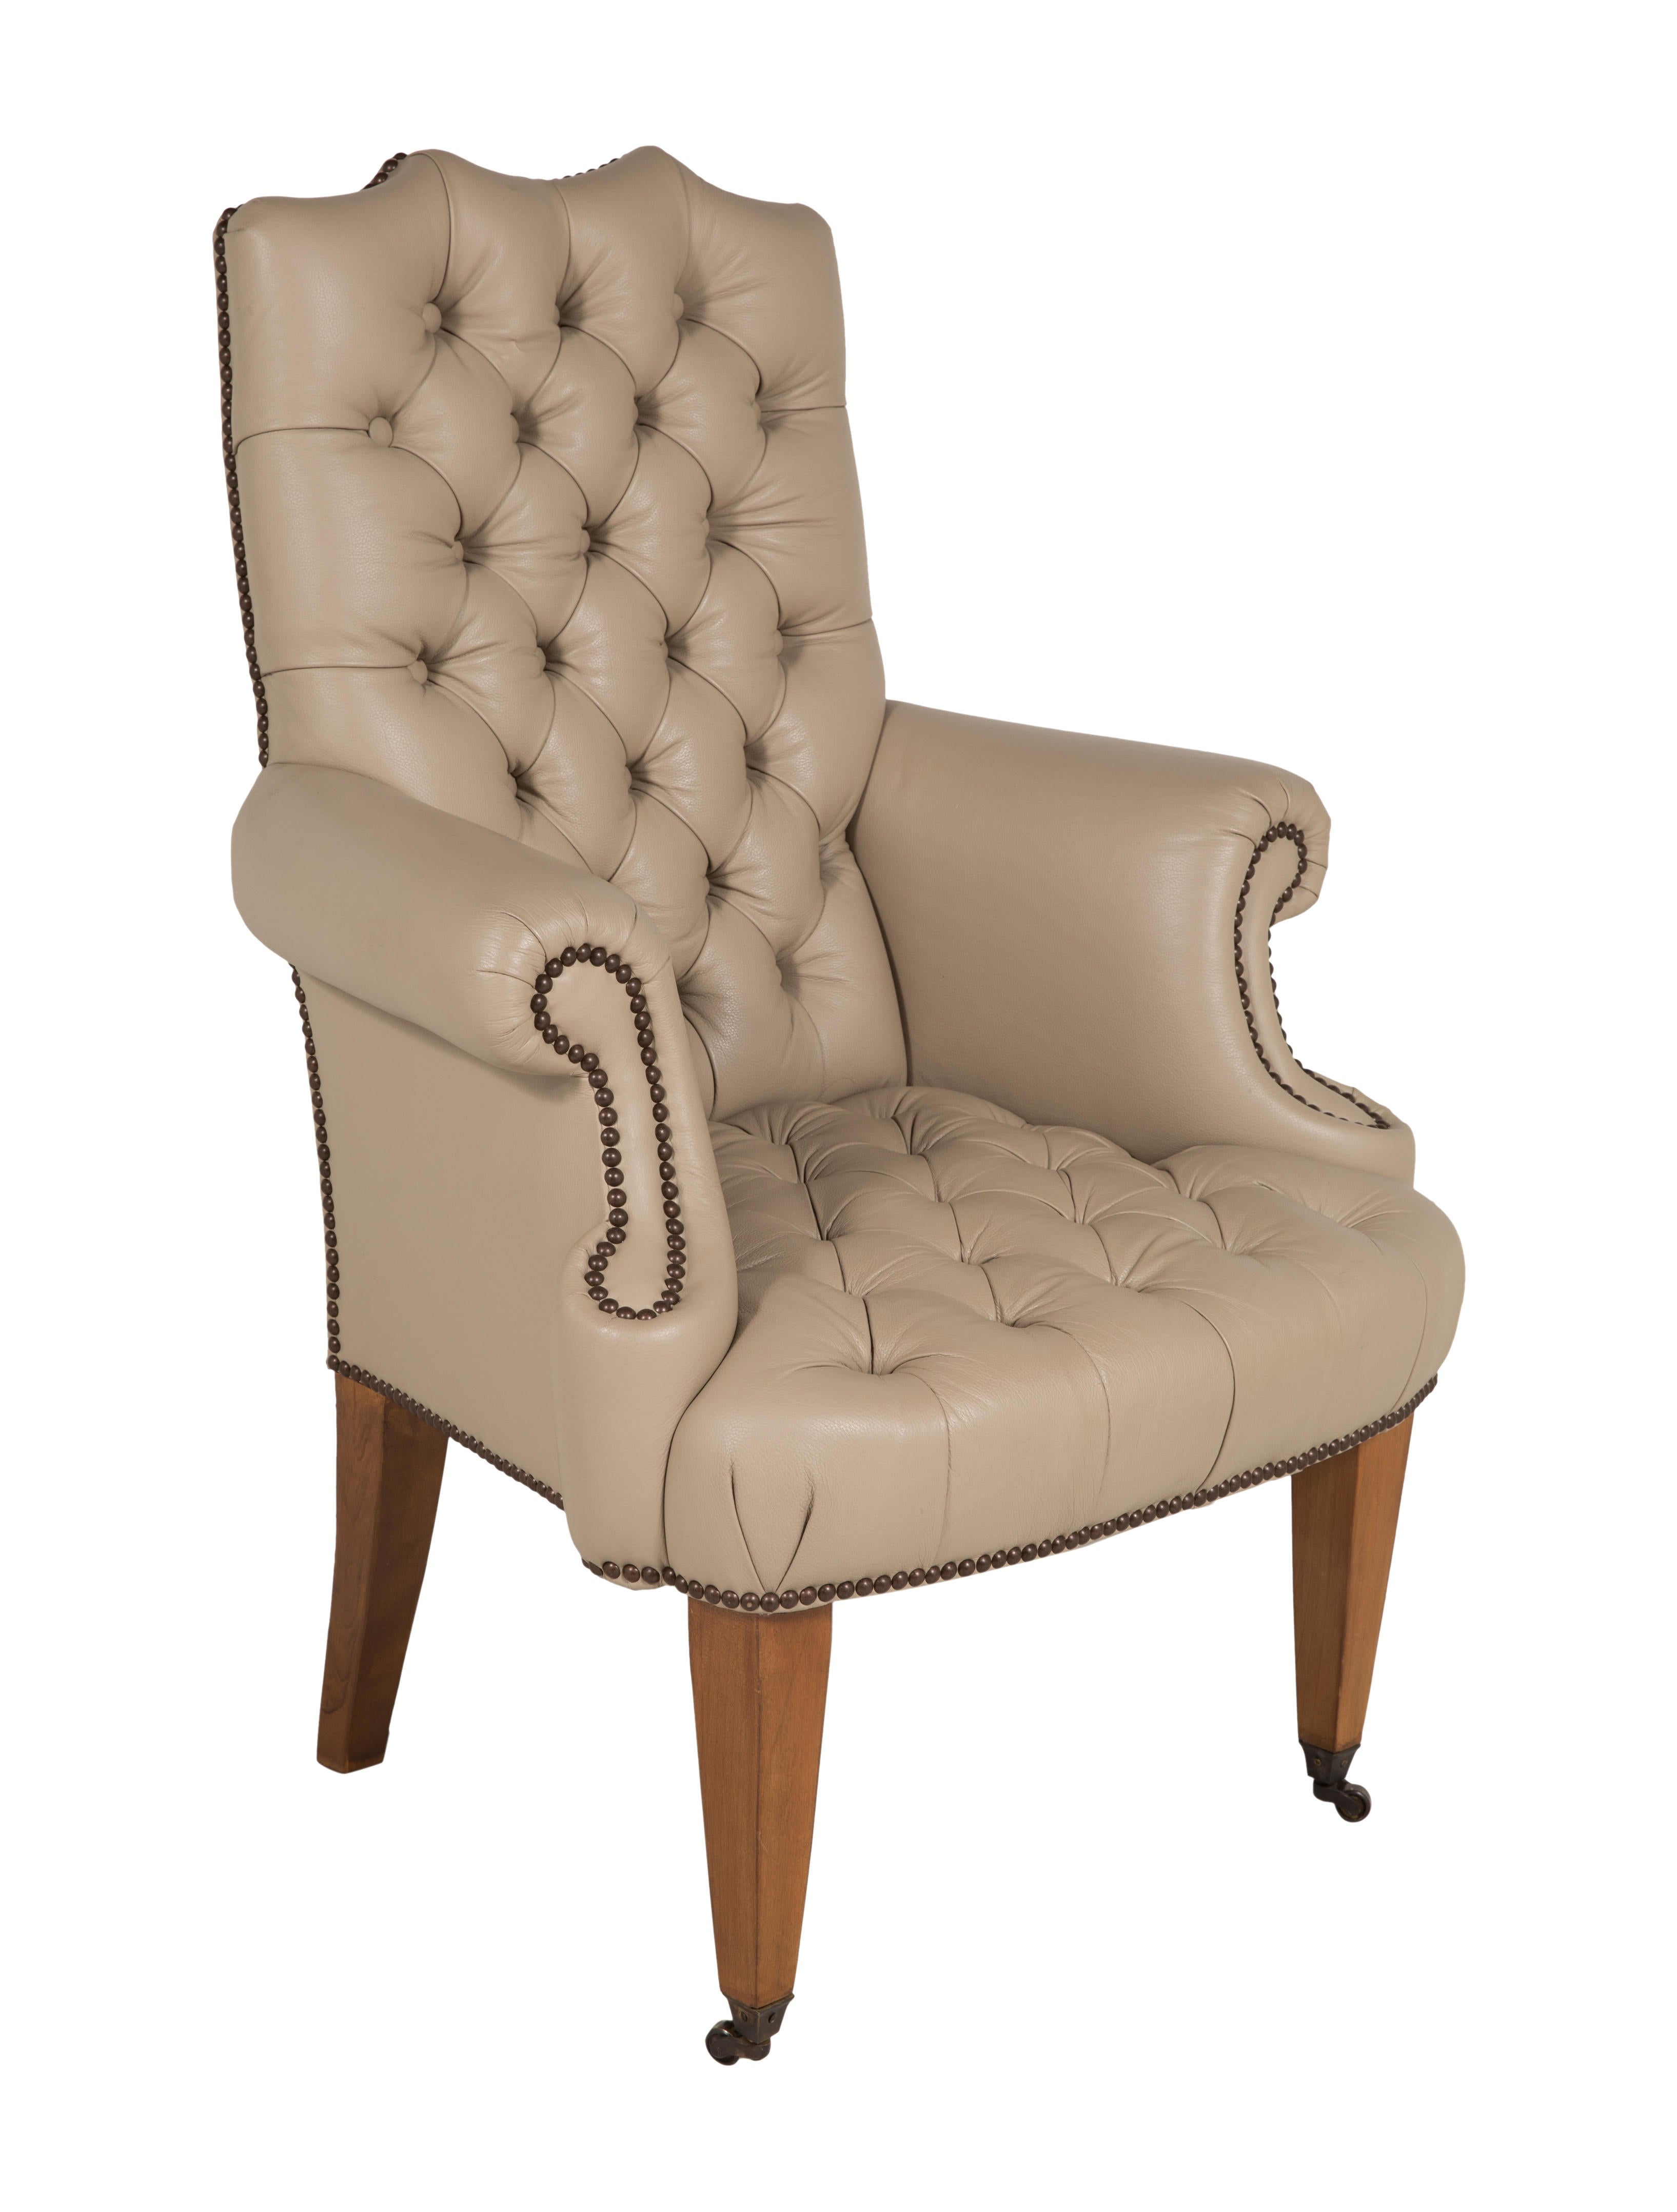 Georgian Style Tufted Leather Chair Furniture